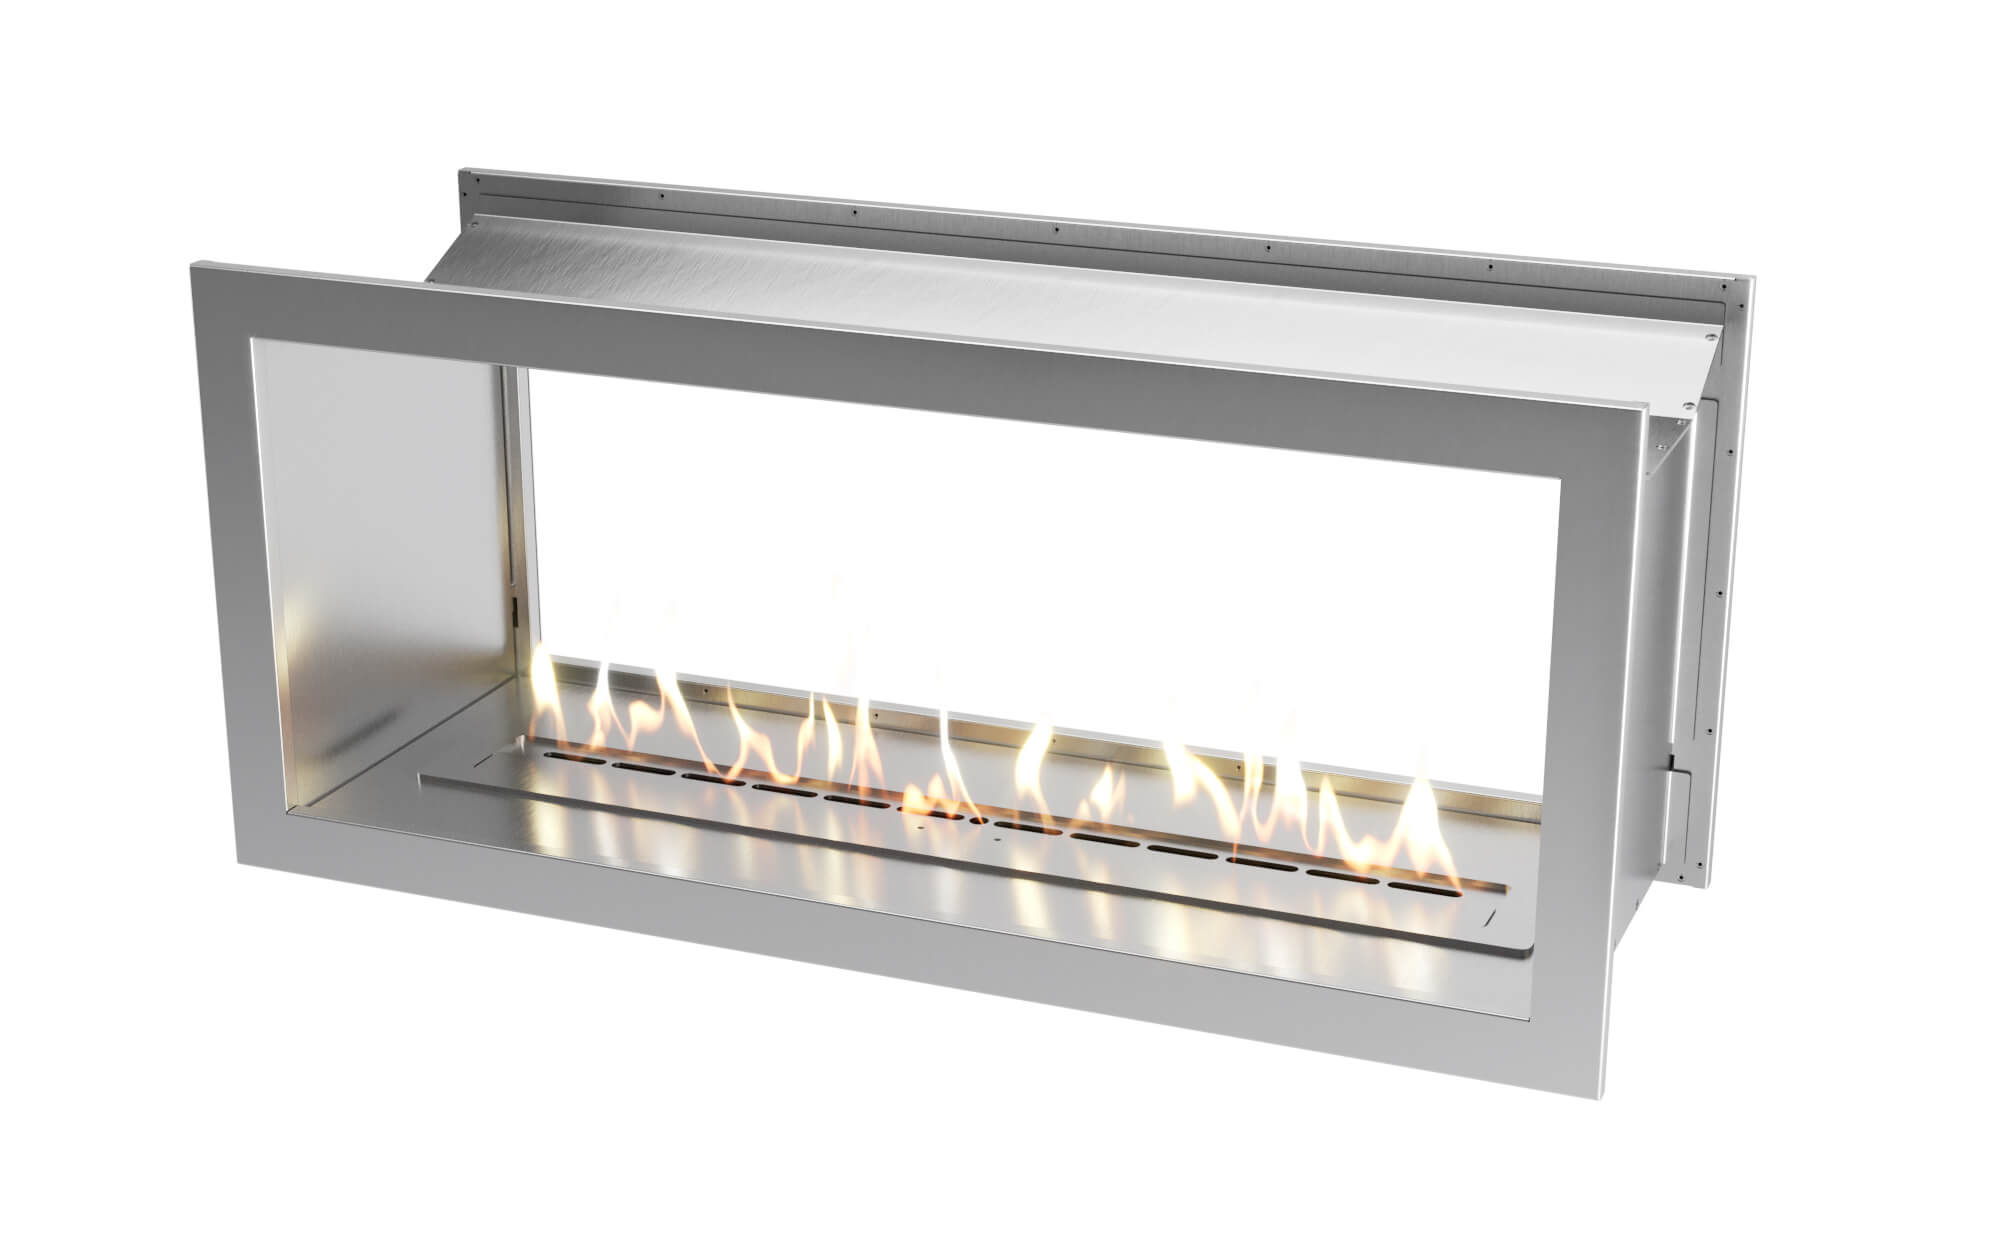 1350 Stainless steel double sided firebox with 1100 slimline bio fuel burner